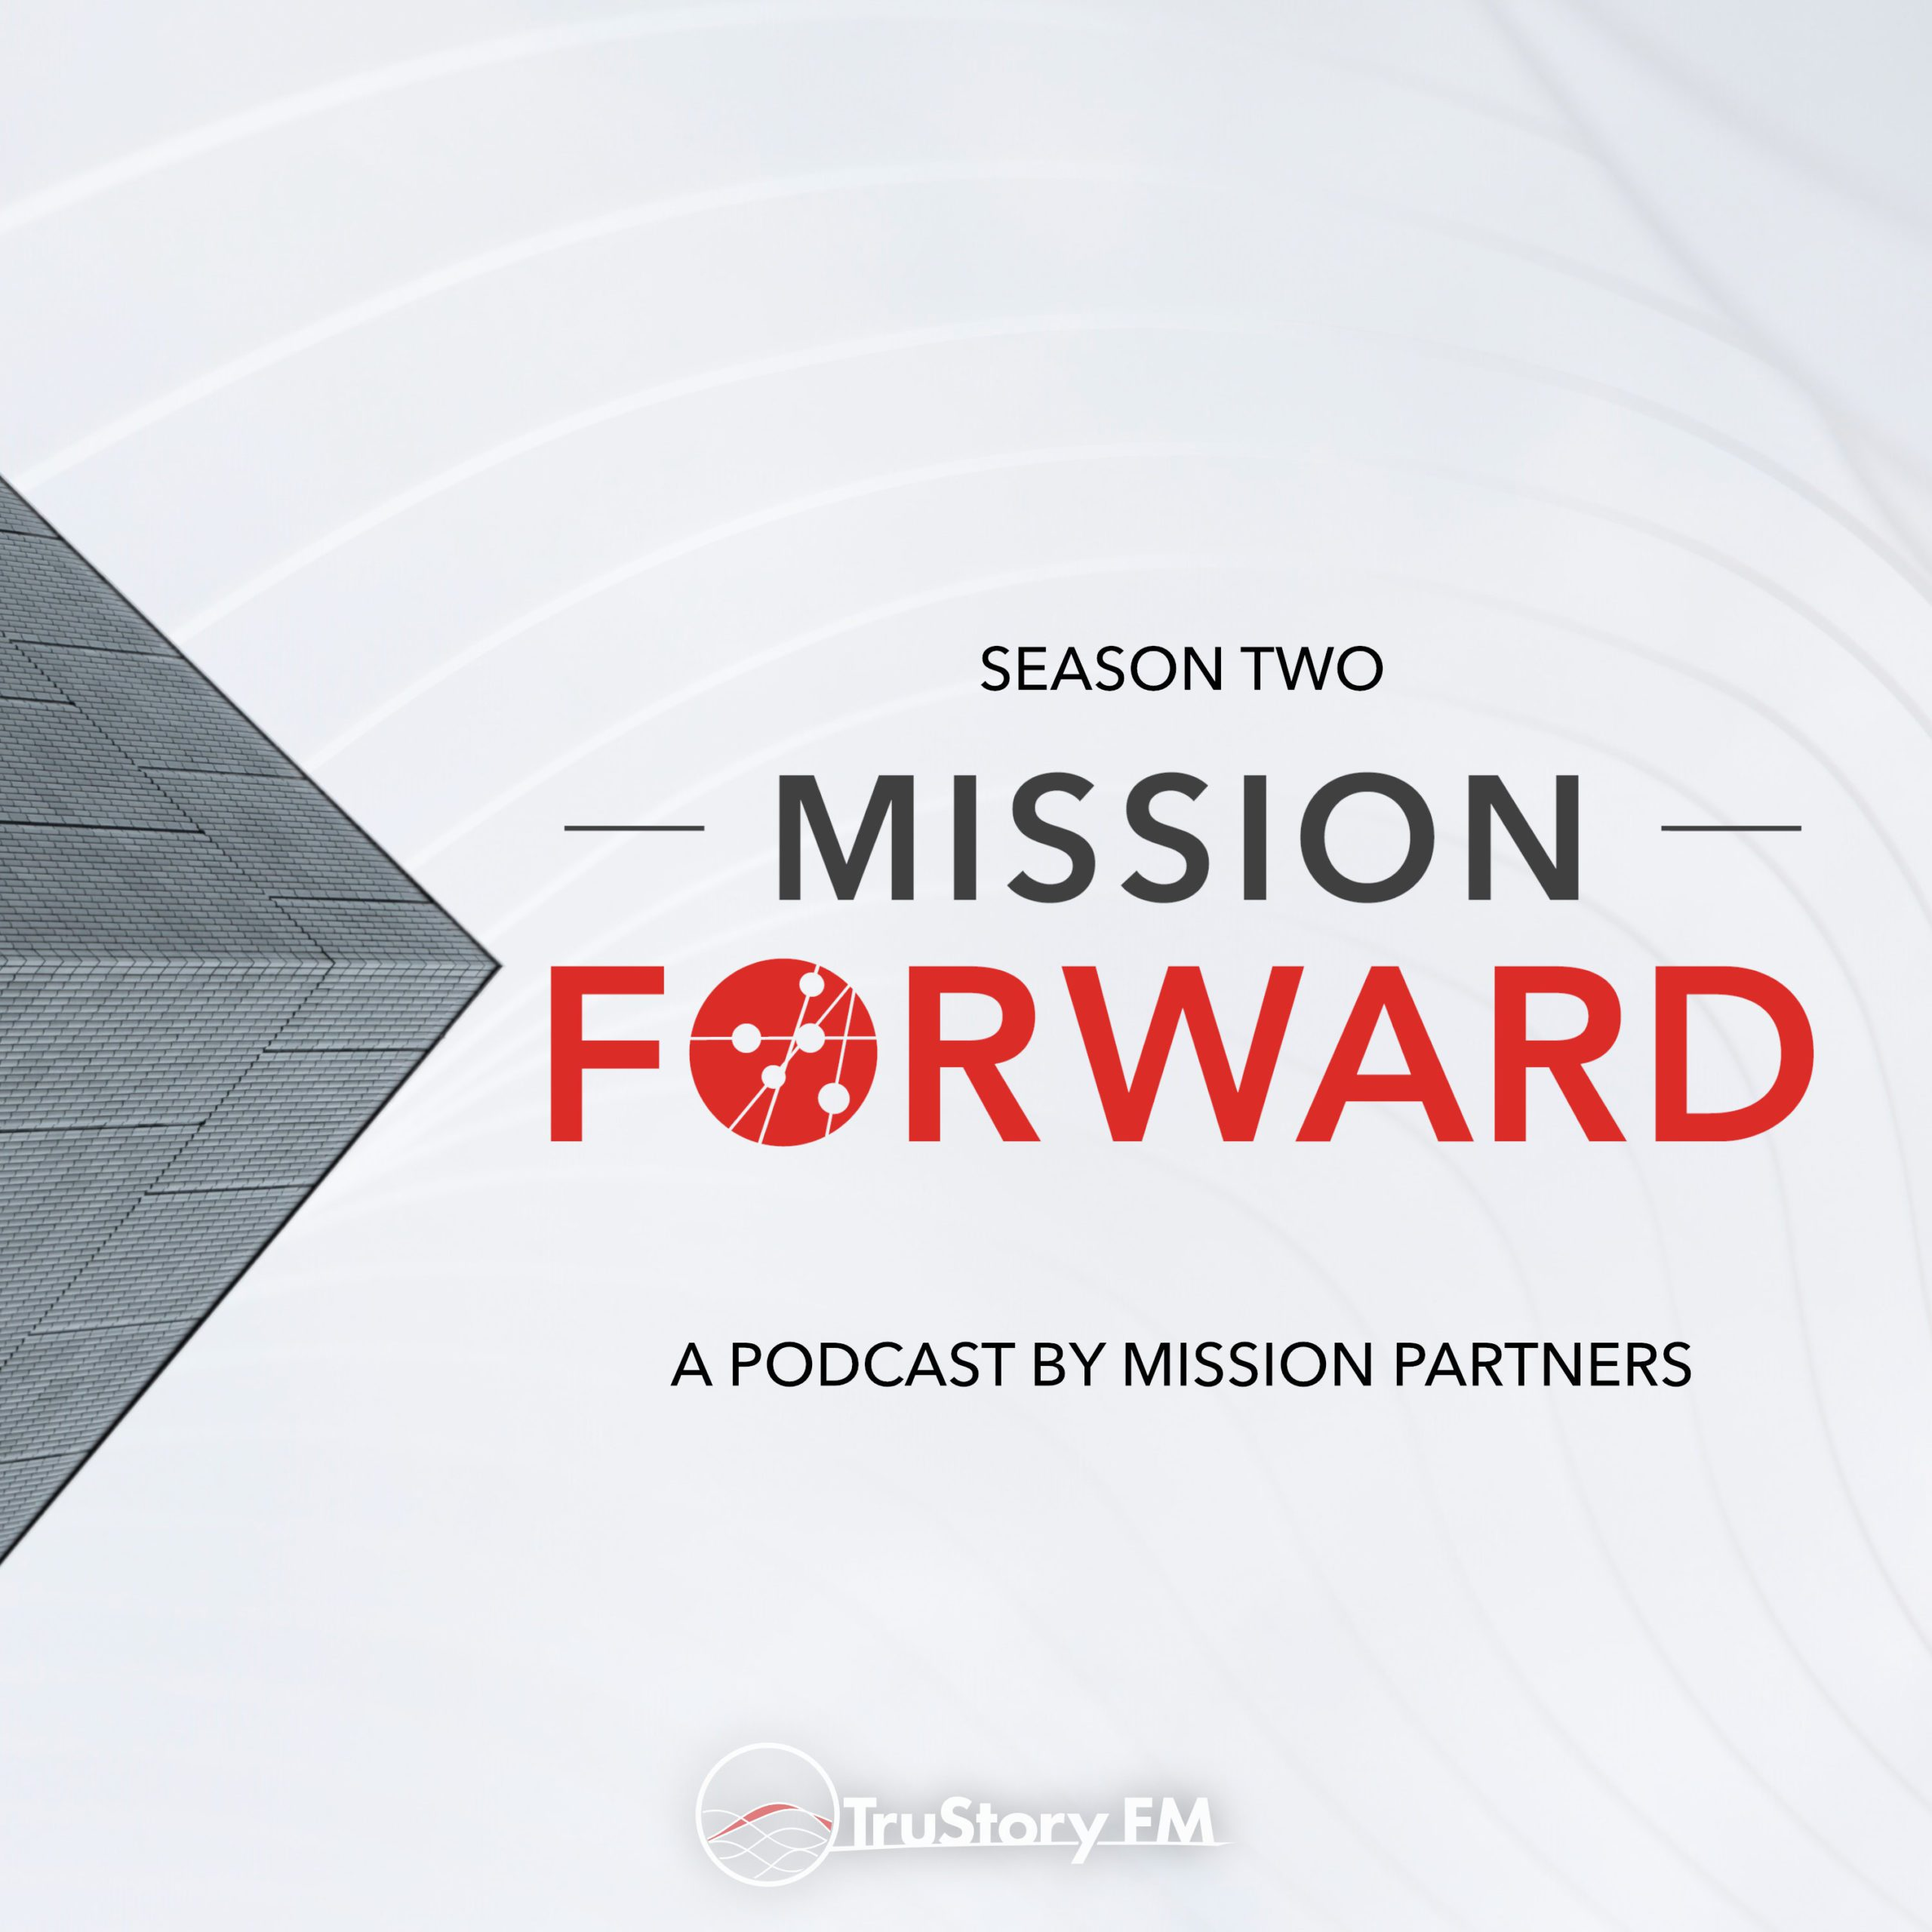 Mission Forward Season 2